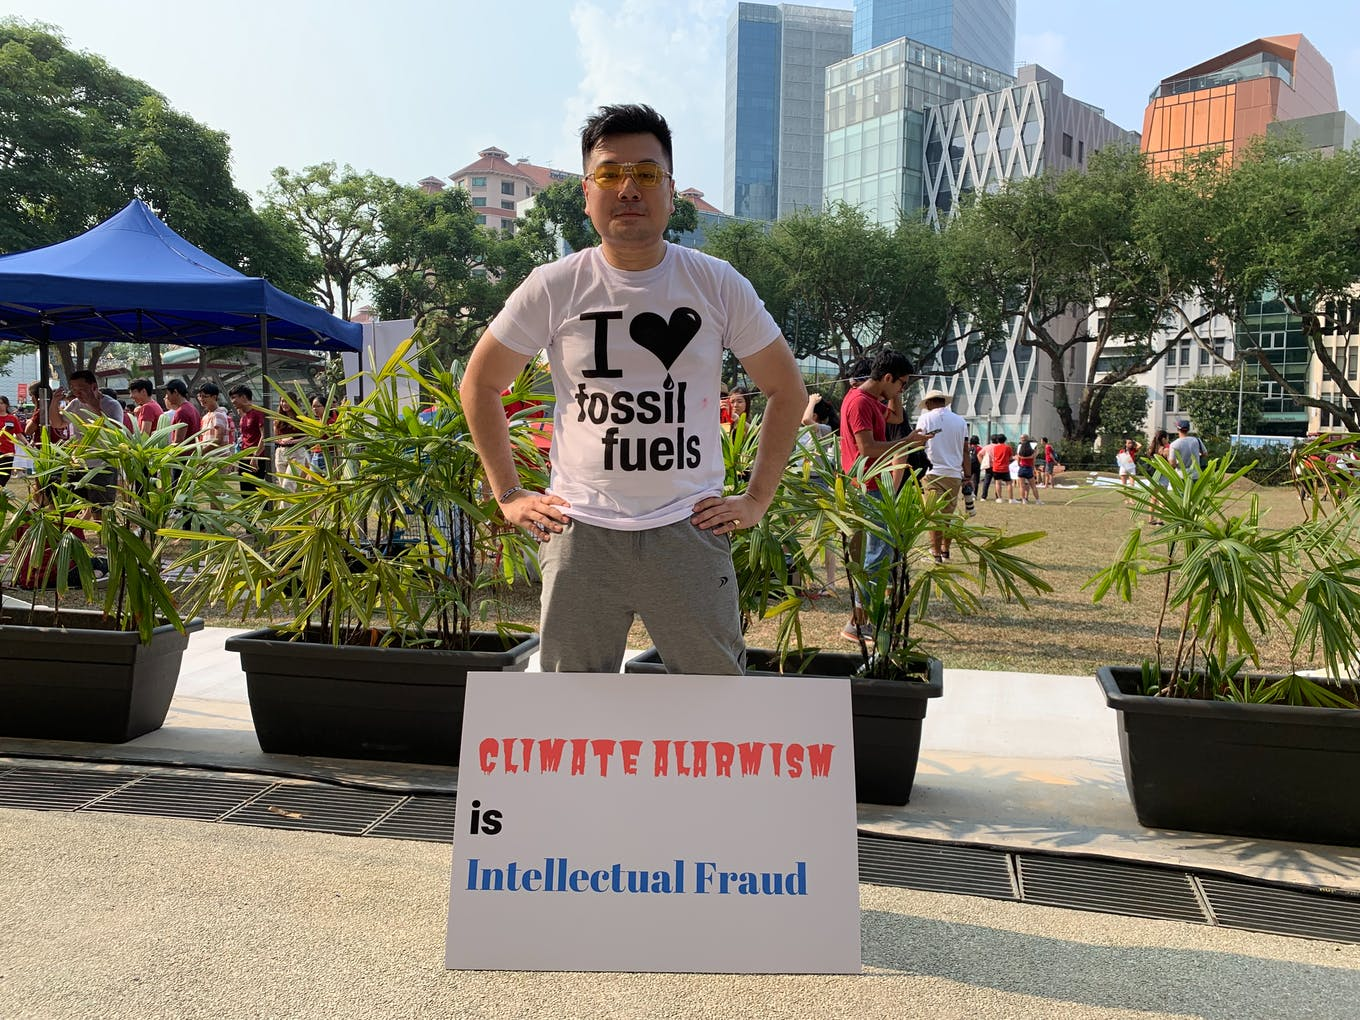 33 year-old pro-fossil fuels campaigner Henry Chew at SG Climate Rally